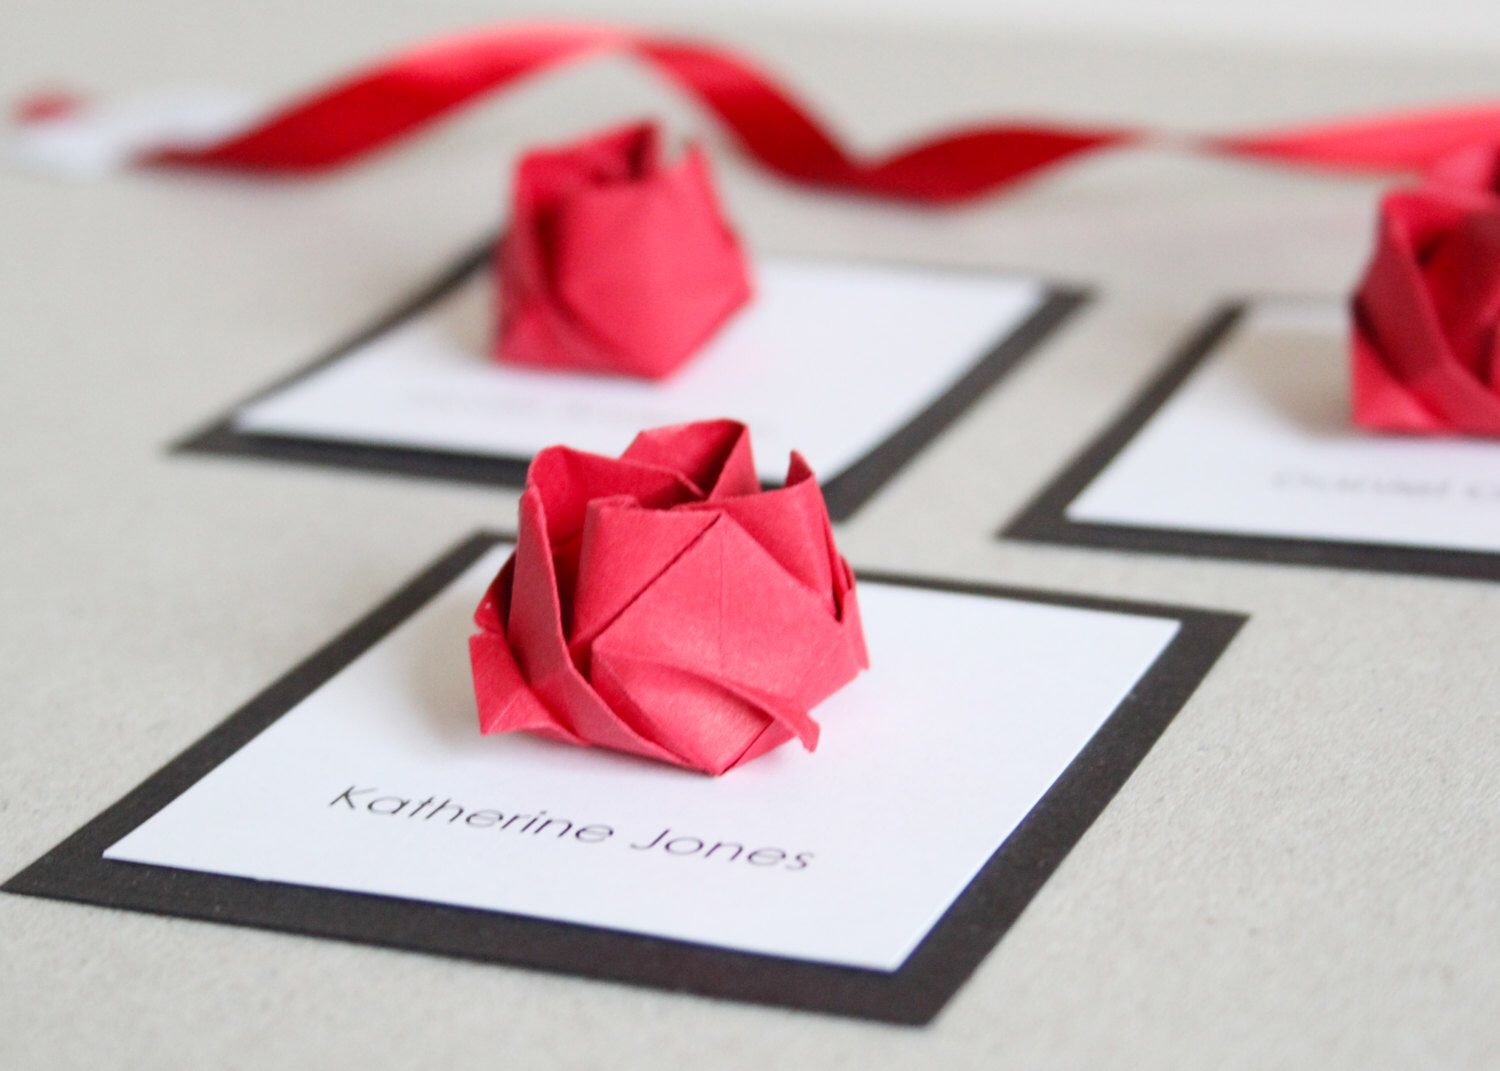 Pin by Carol Simmons on ORIGAMI | Pinterest | Place cards, Origami ...